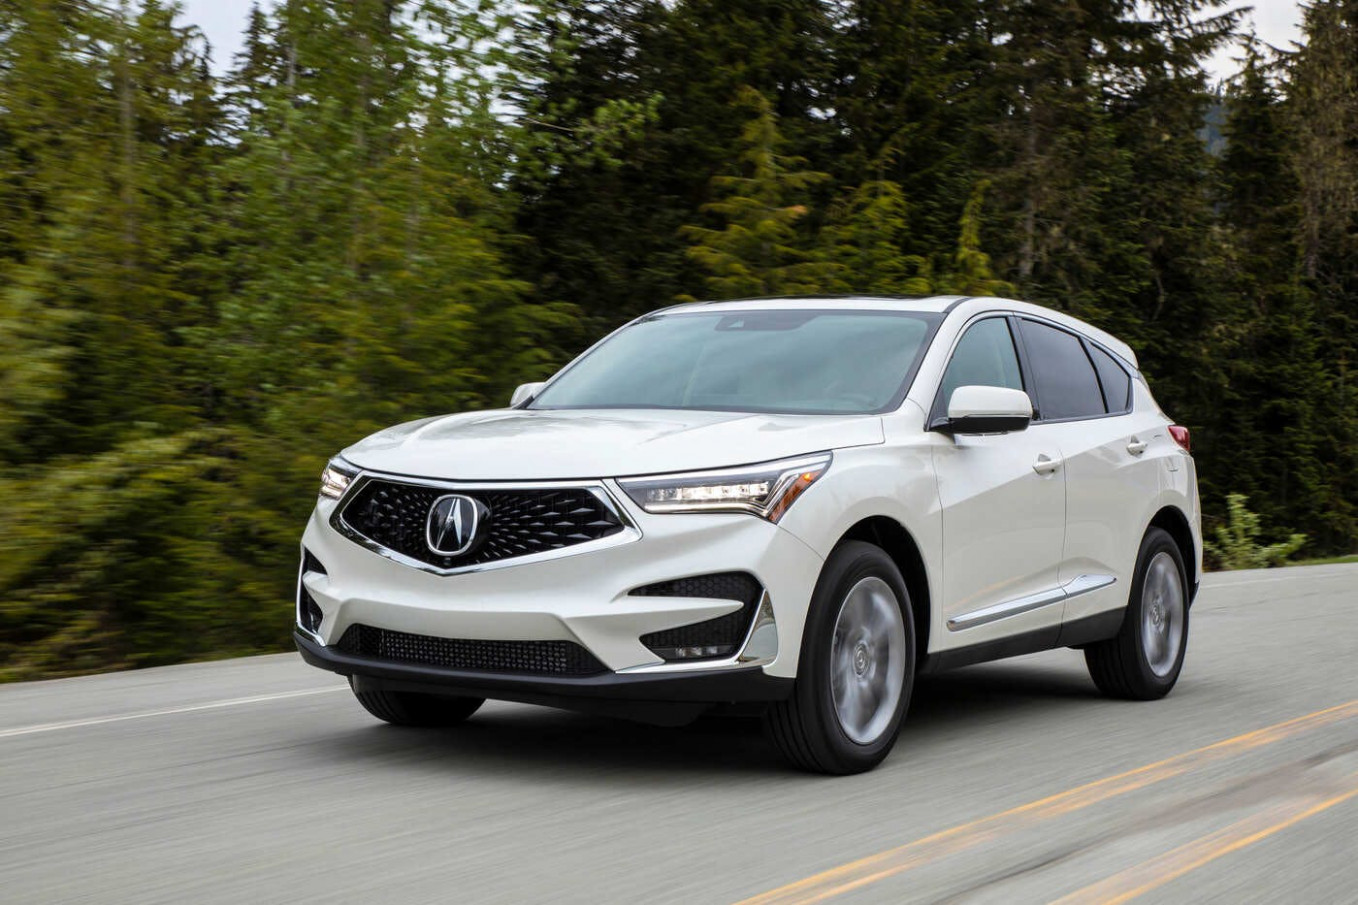 10 Acura RDX Comparisons, Reviews & Pictures | TrueCar - 2020 acura gas mileage